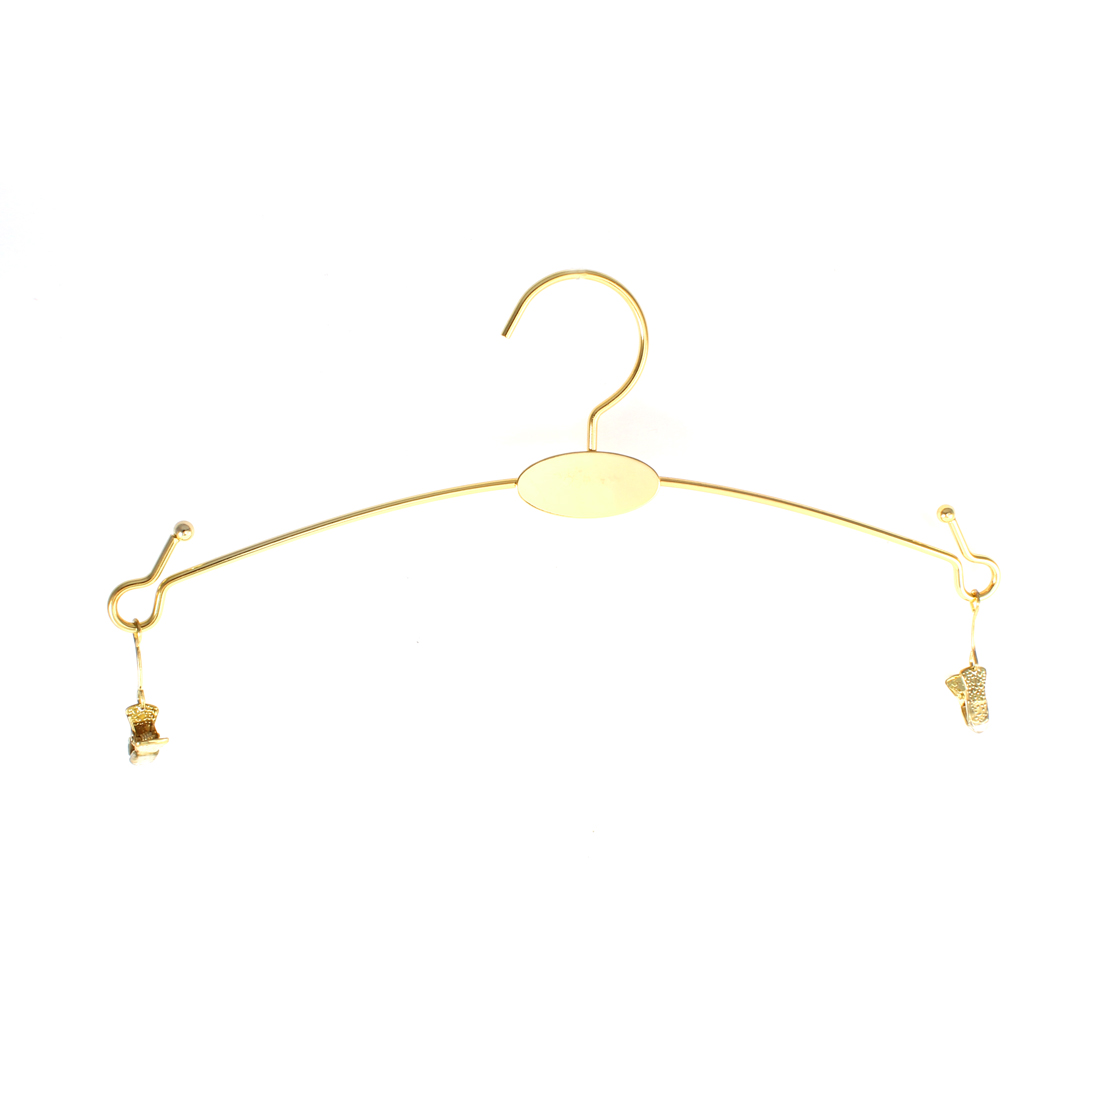 Gold Tone Metal Outdoor Indoor Garment Coat Clothes Hangers